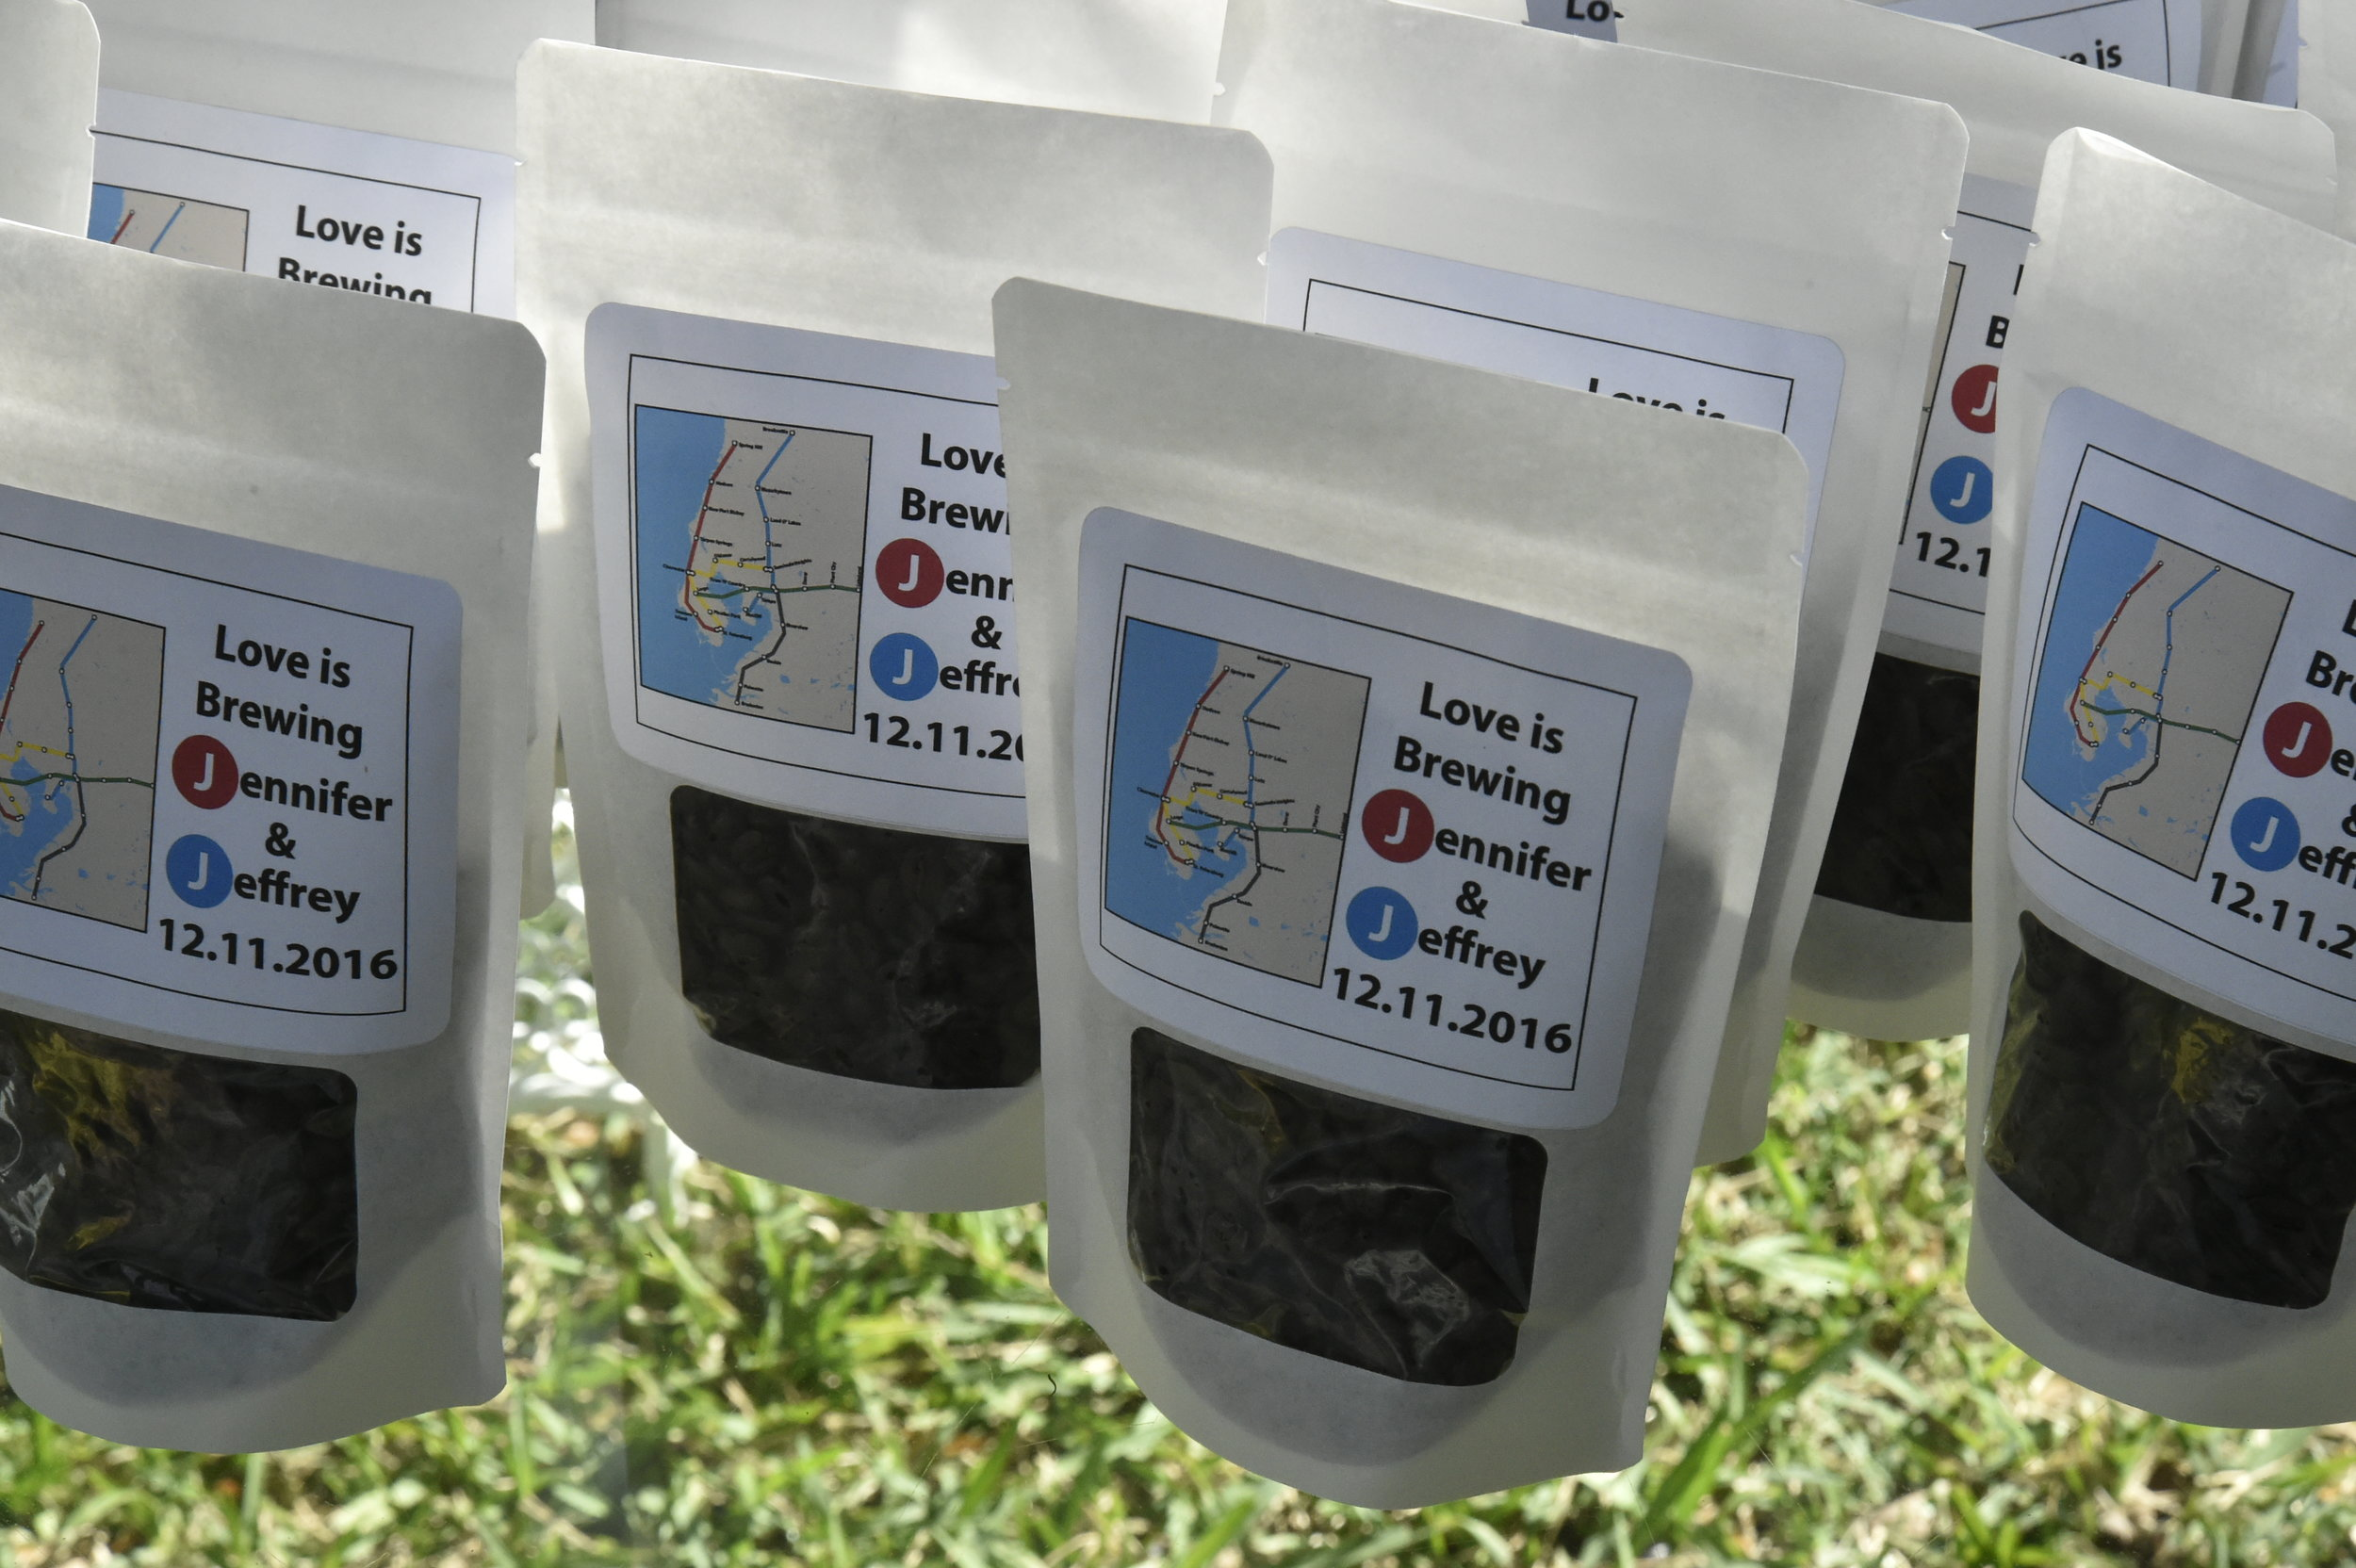 Love was brewing when the couple sent guests home with bags of coffee beans as favors featuring a transit-themed label!